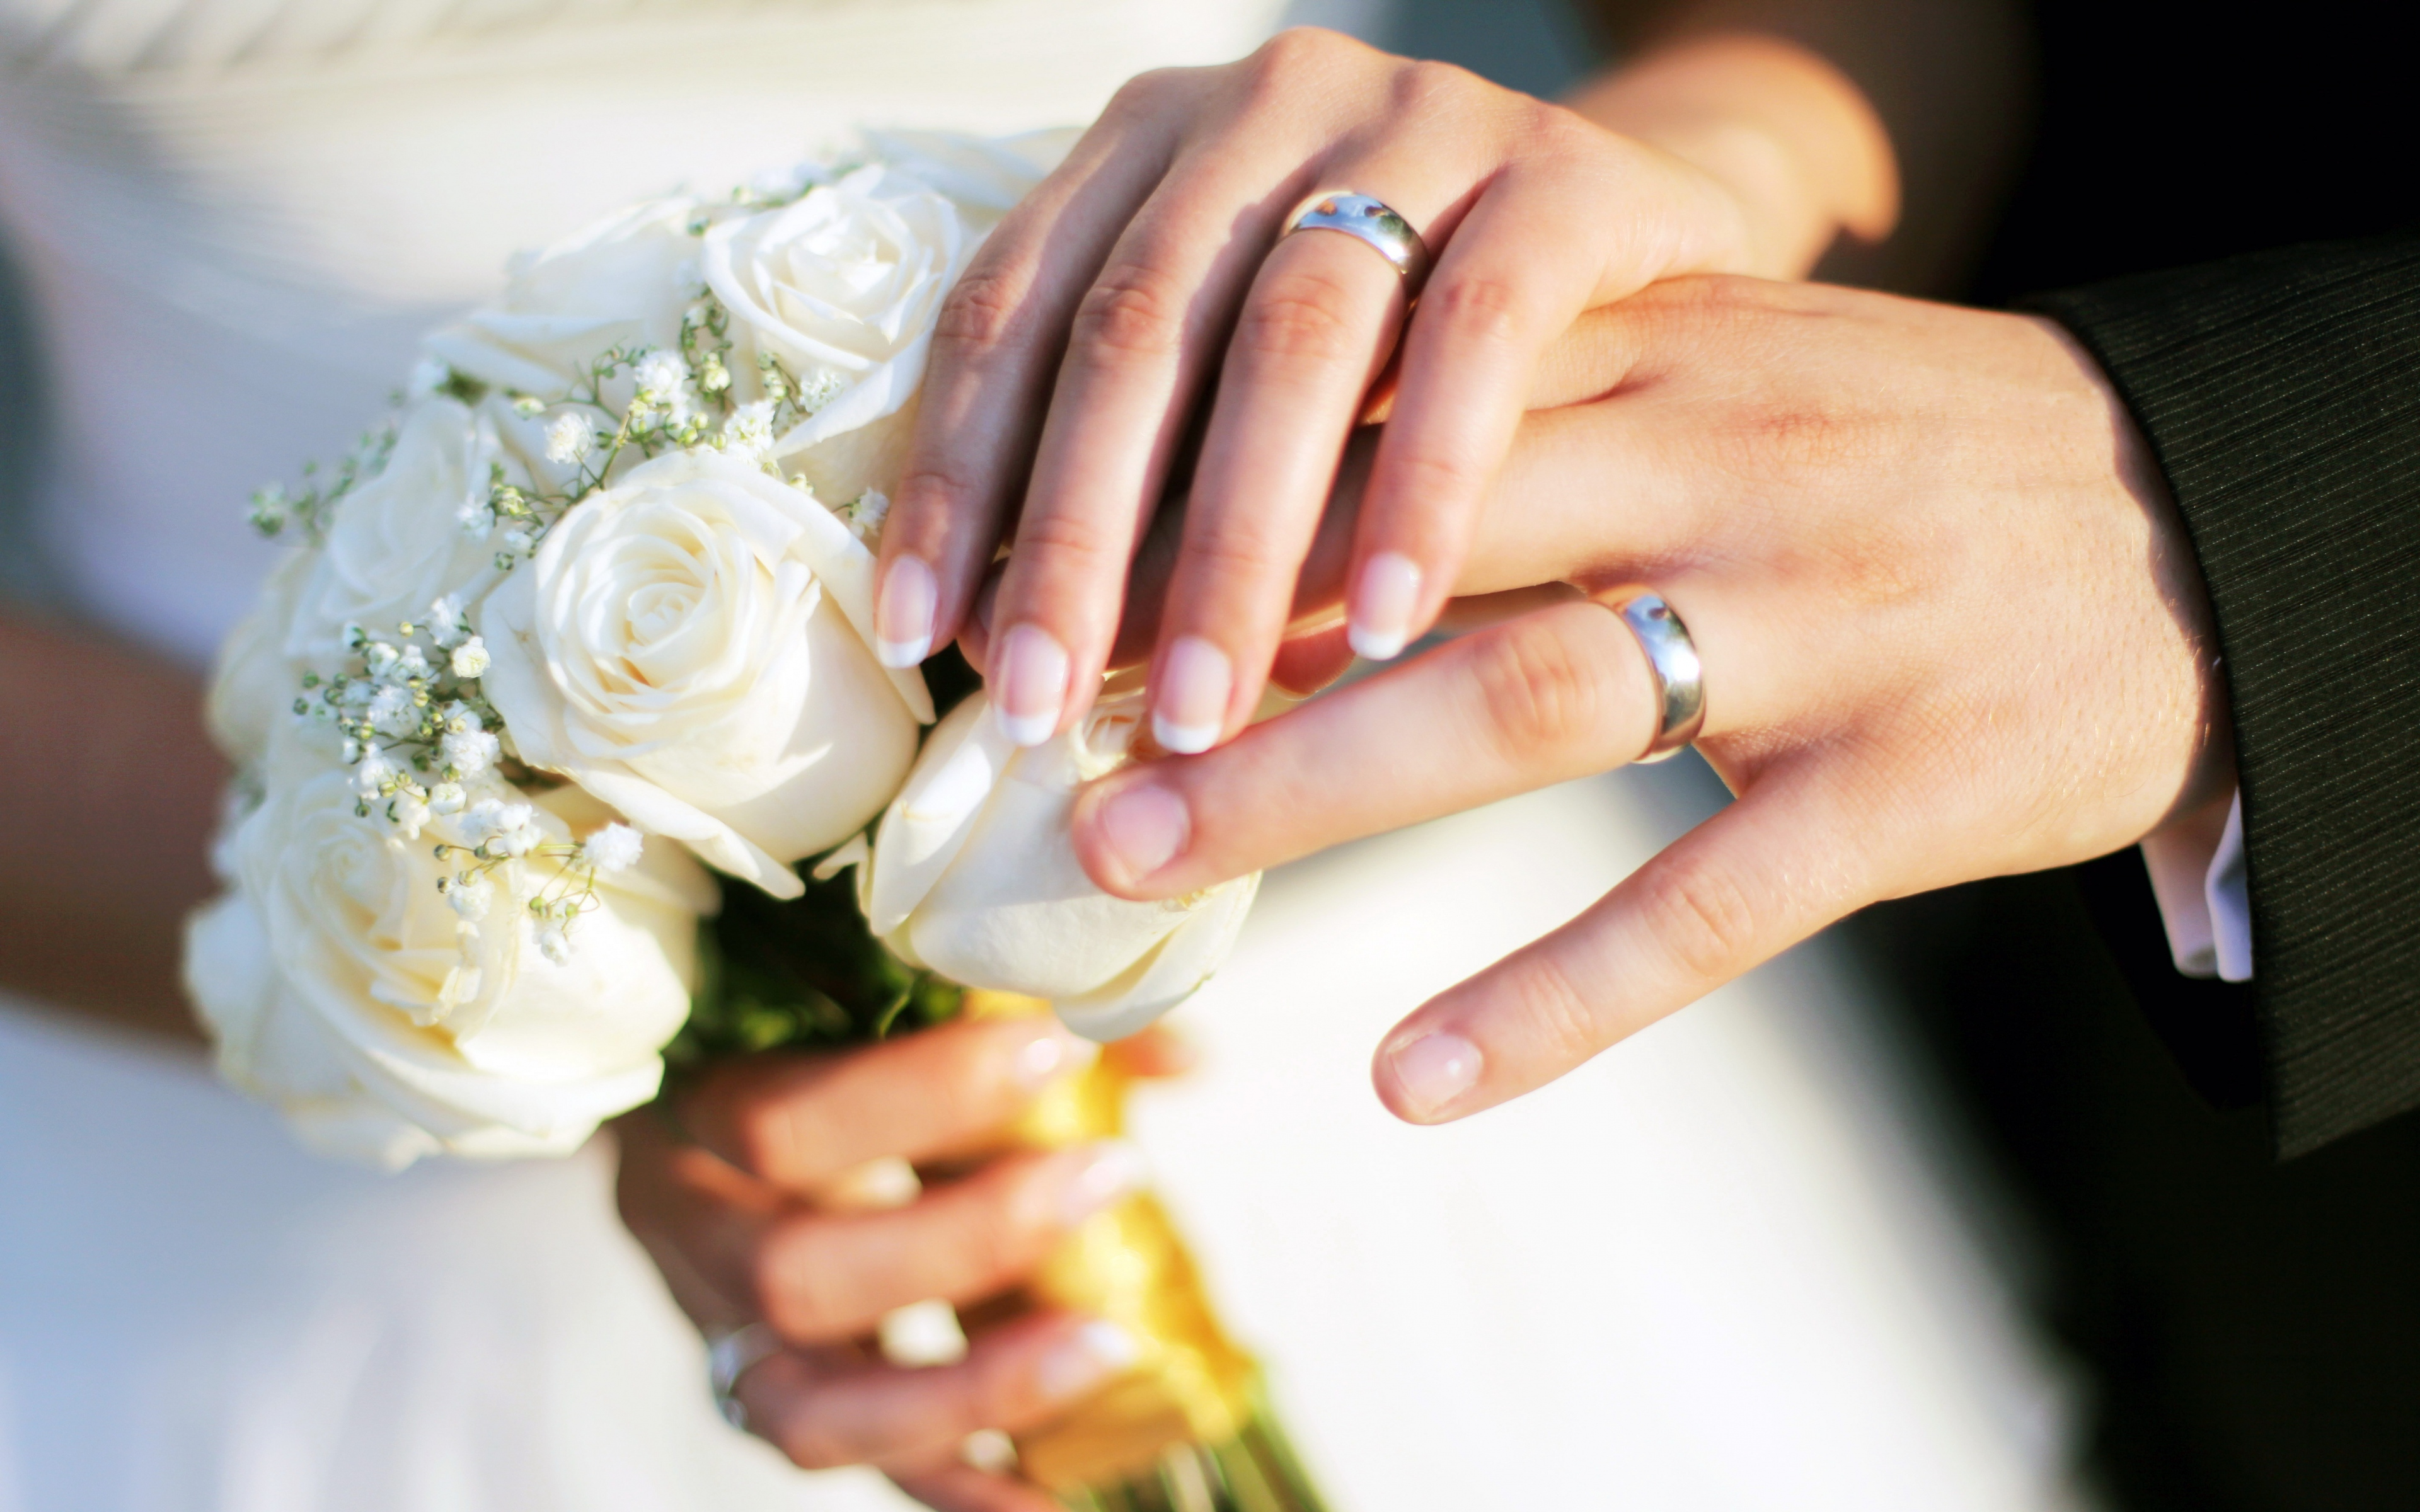 Hands Wedding Rings Bouquet Roses 80655 3840x2400